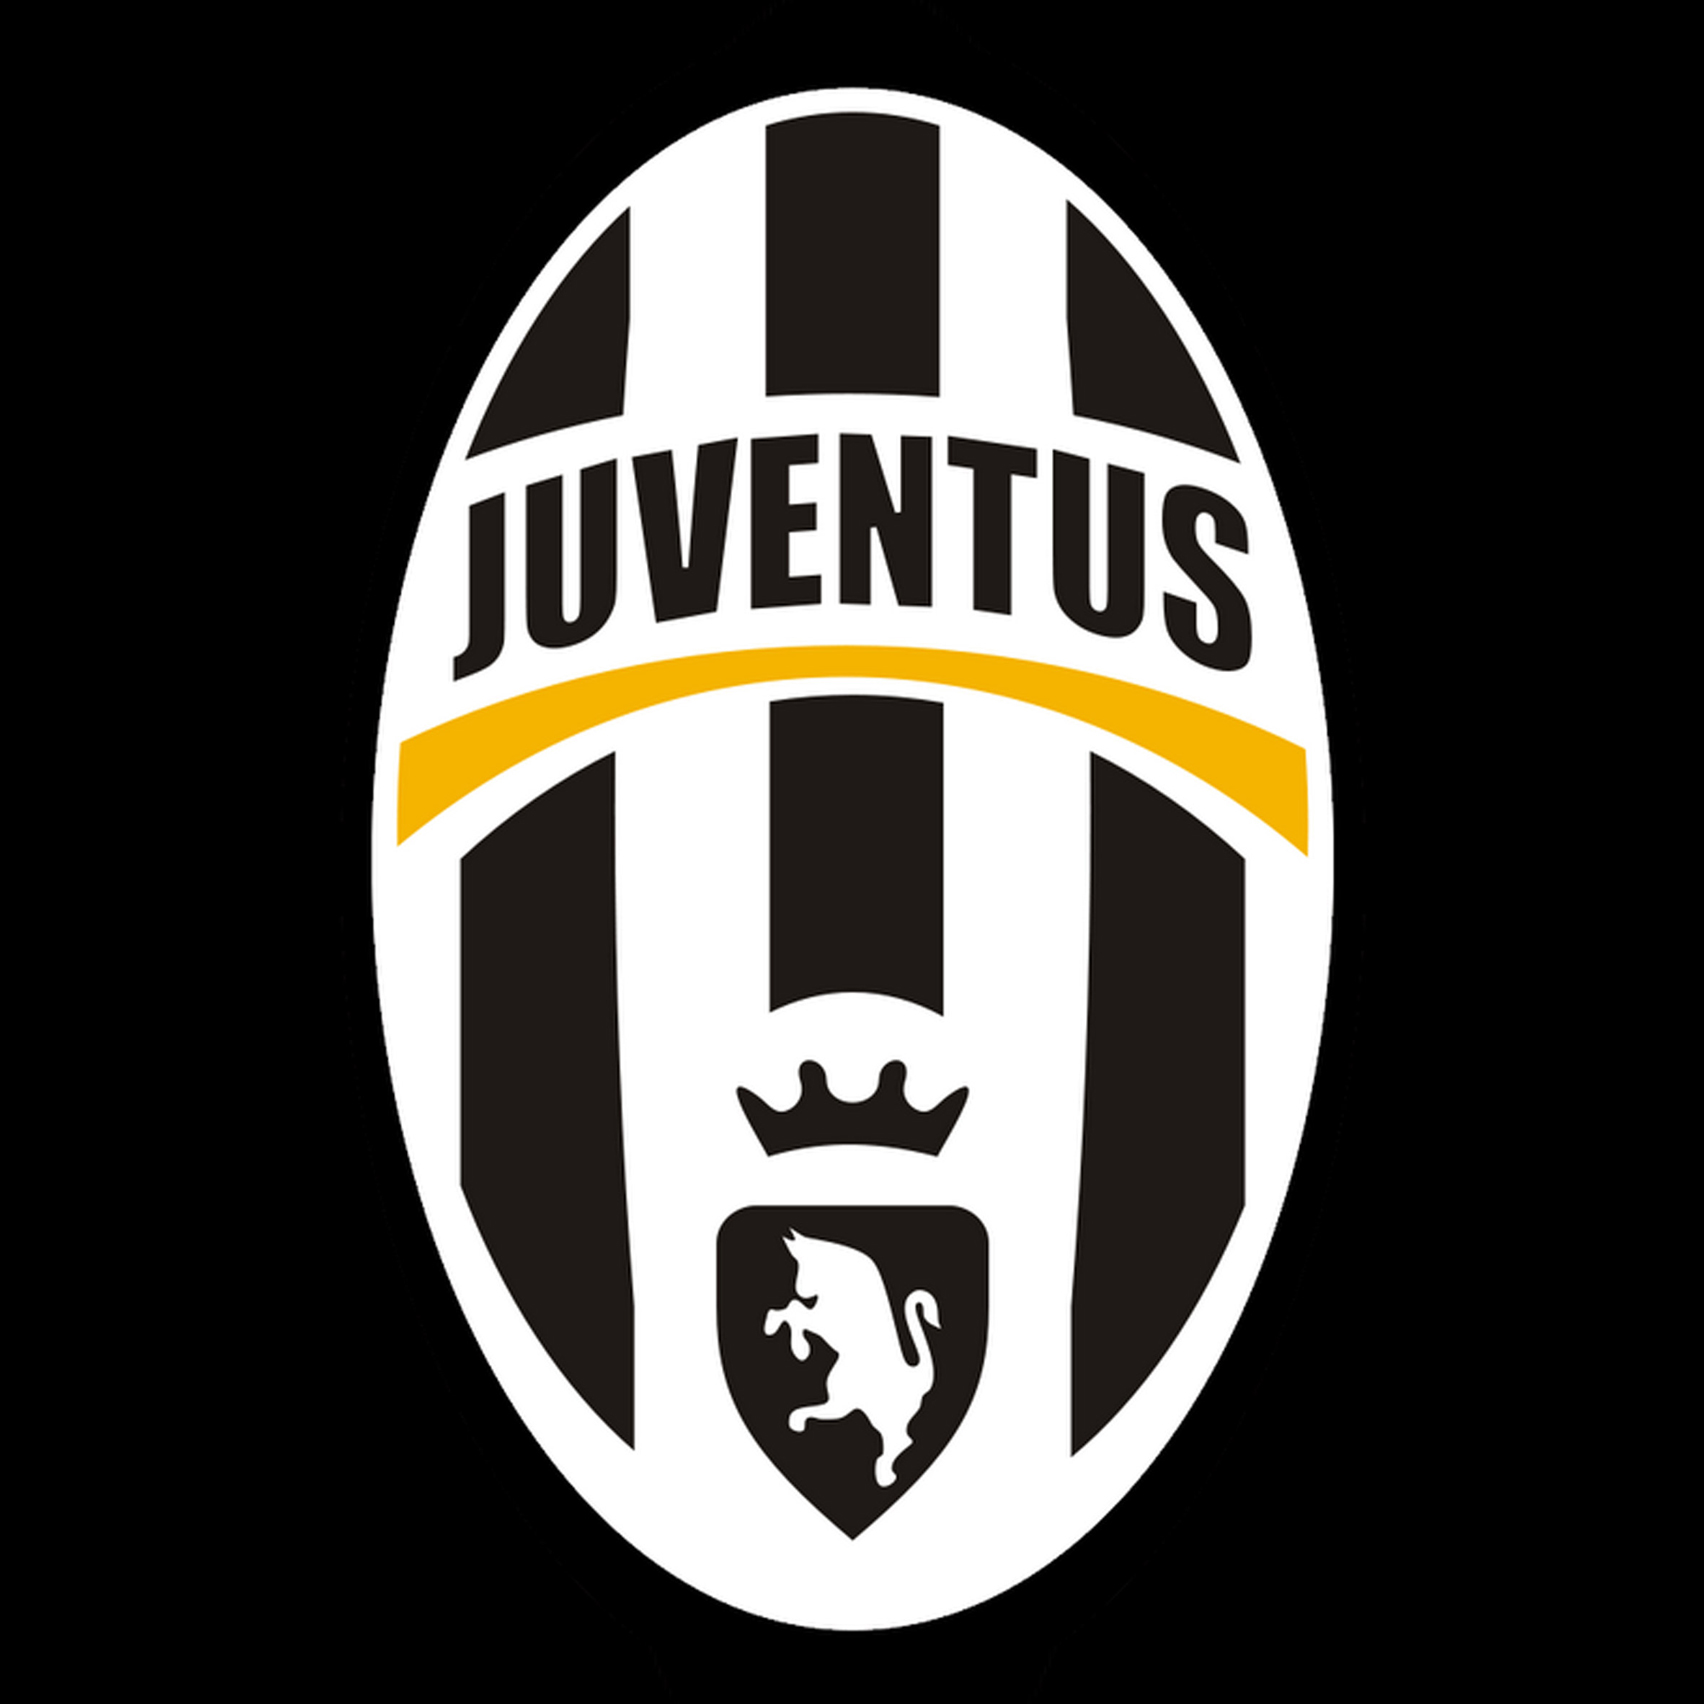 juventus escudo viejo insights magazine marketing publicidad comunicacion juventus escudo viejo insights magazine